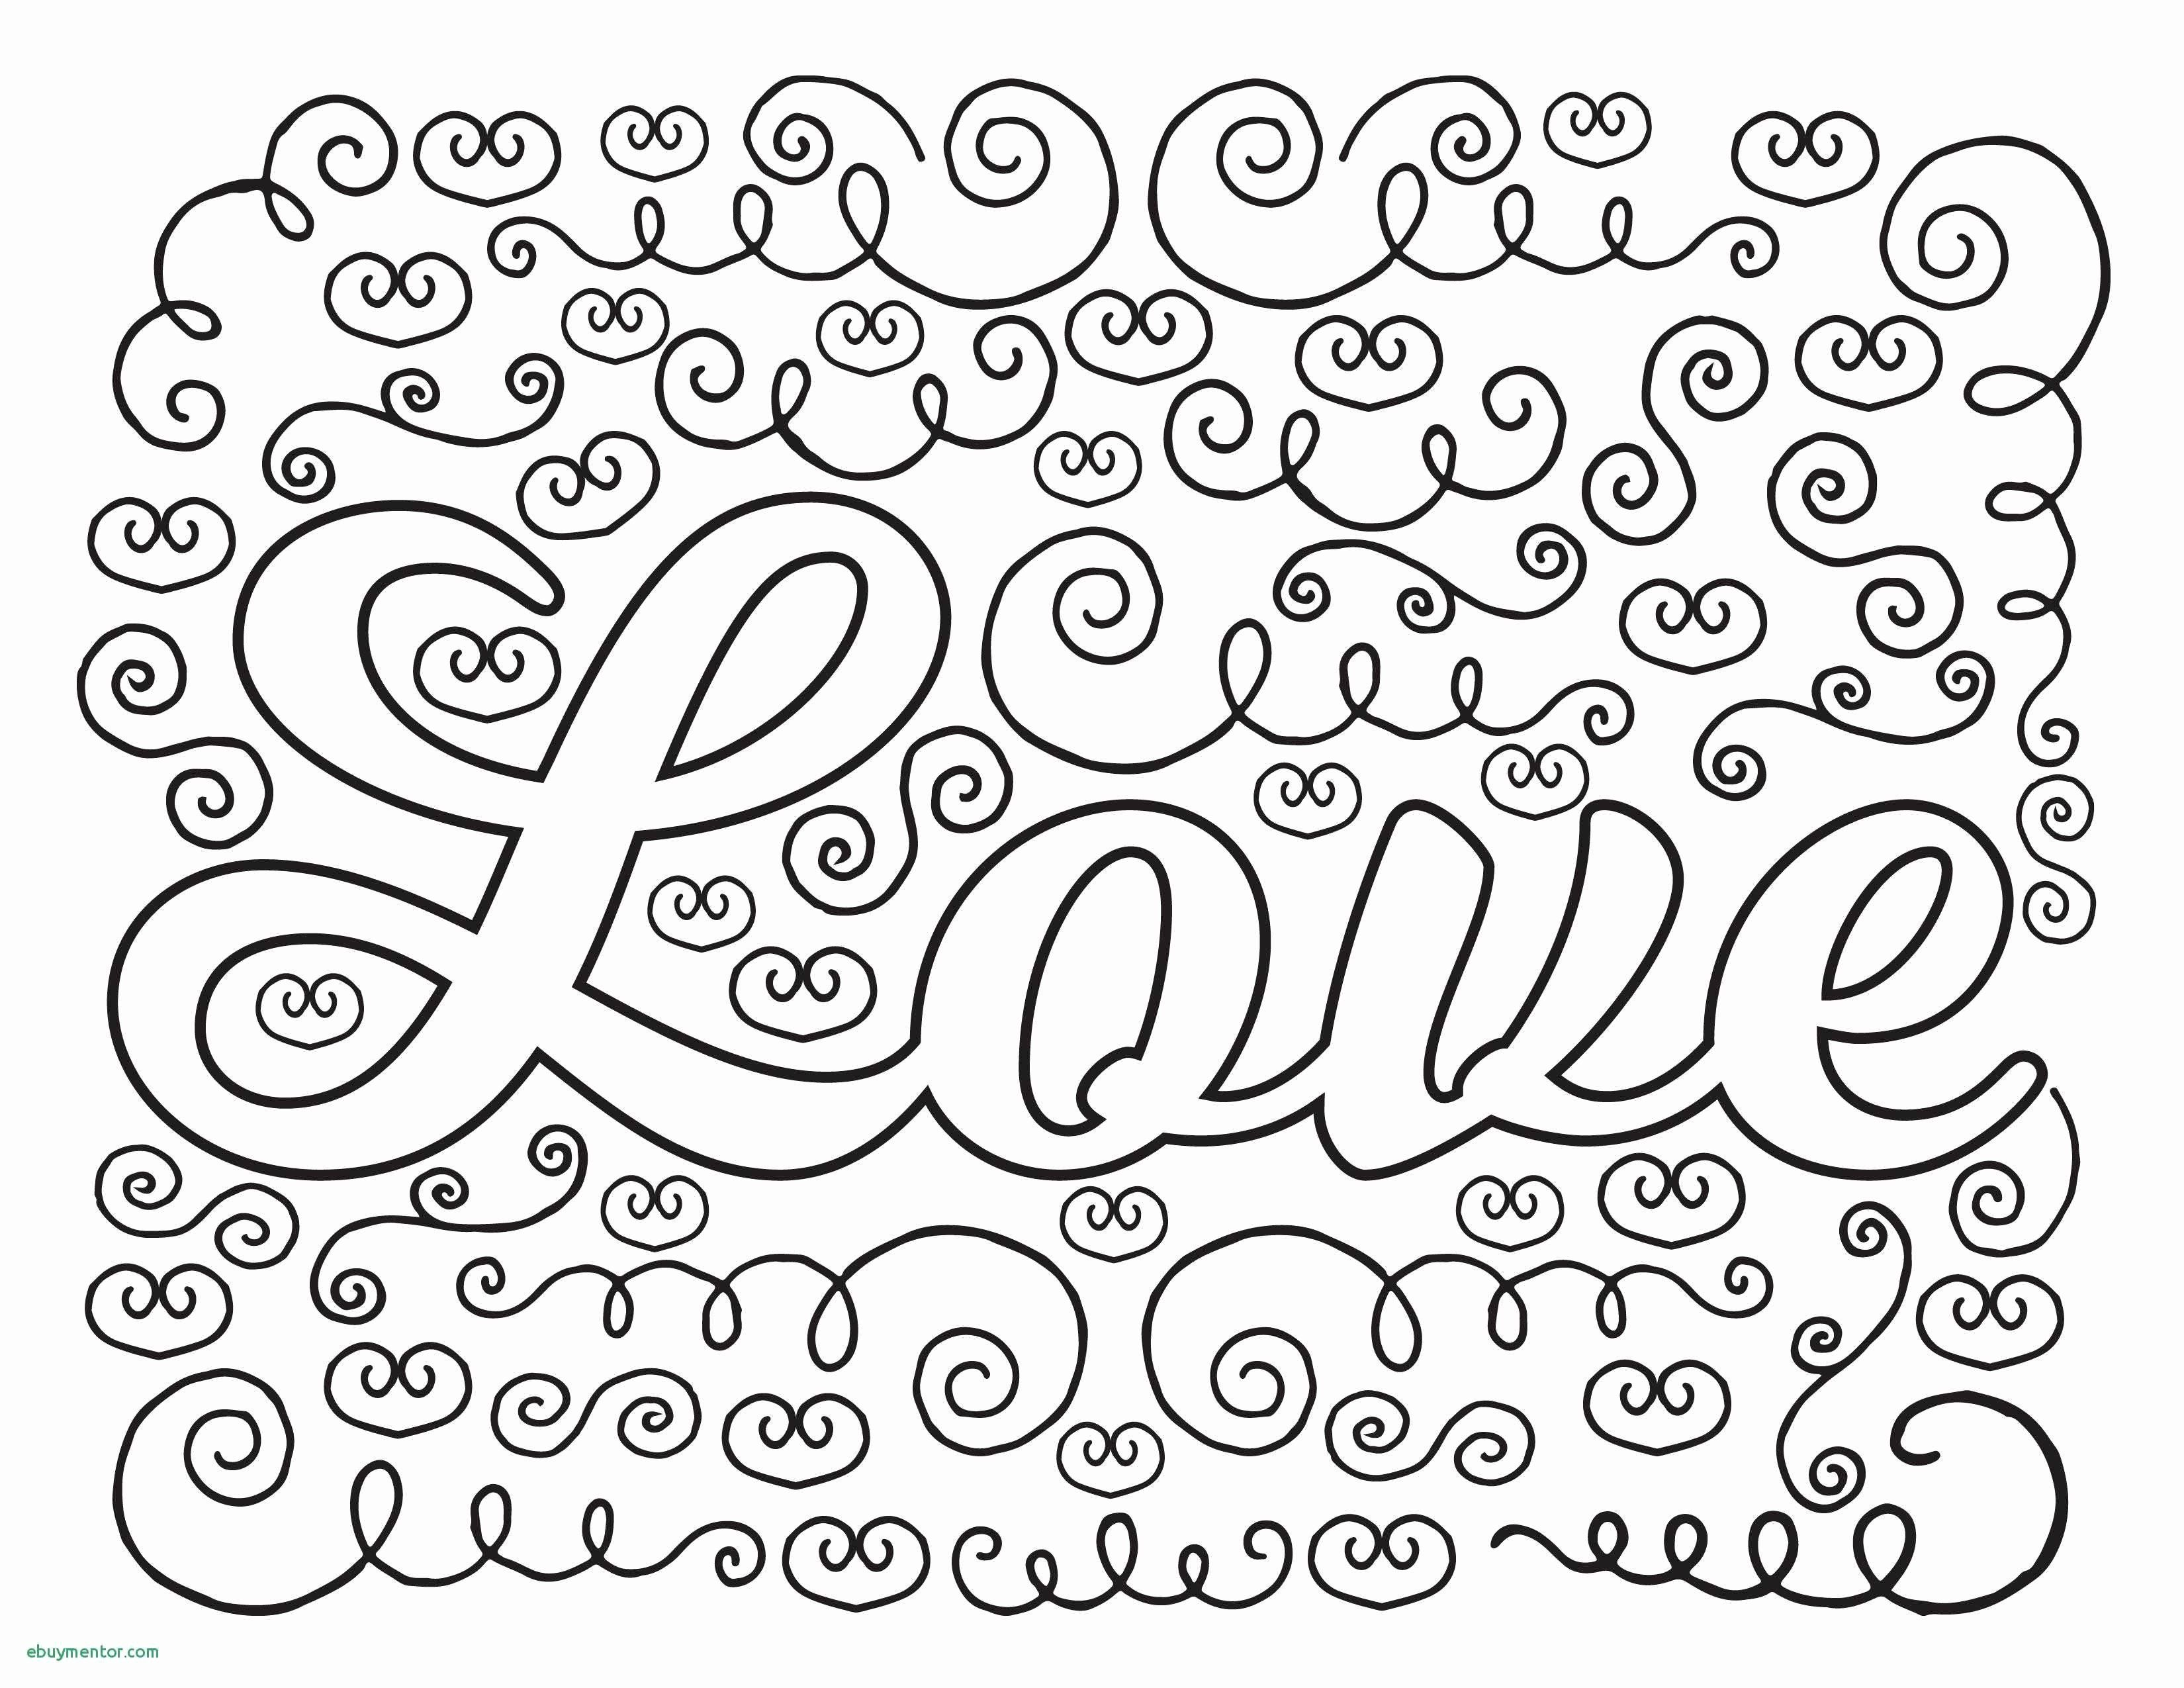 Oriental Trading Coloring Pages Awesome 49 Fresh Christmas Ornaments Coloring Pages In 2020 Love Coloring Pages Heart Coloring Pages Valentine Coloring Pages